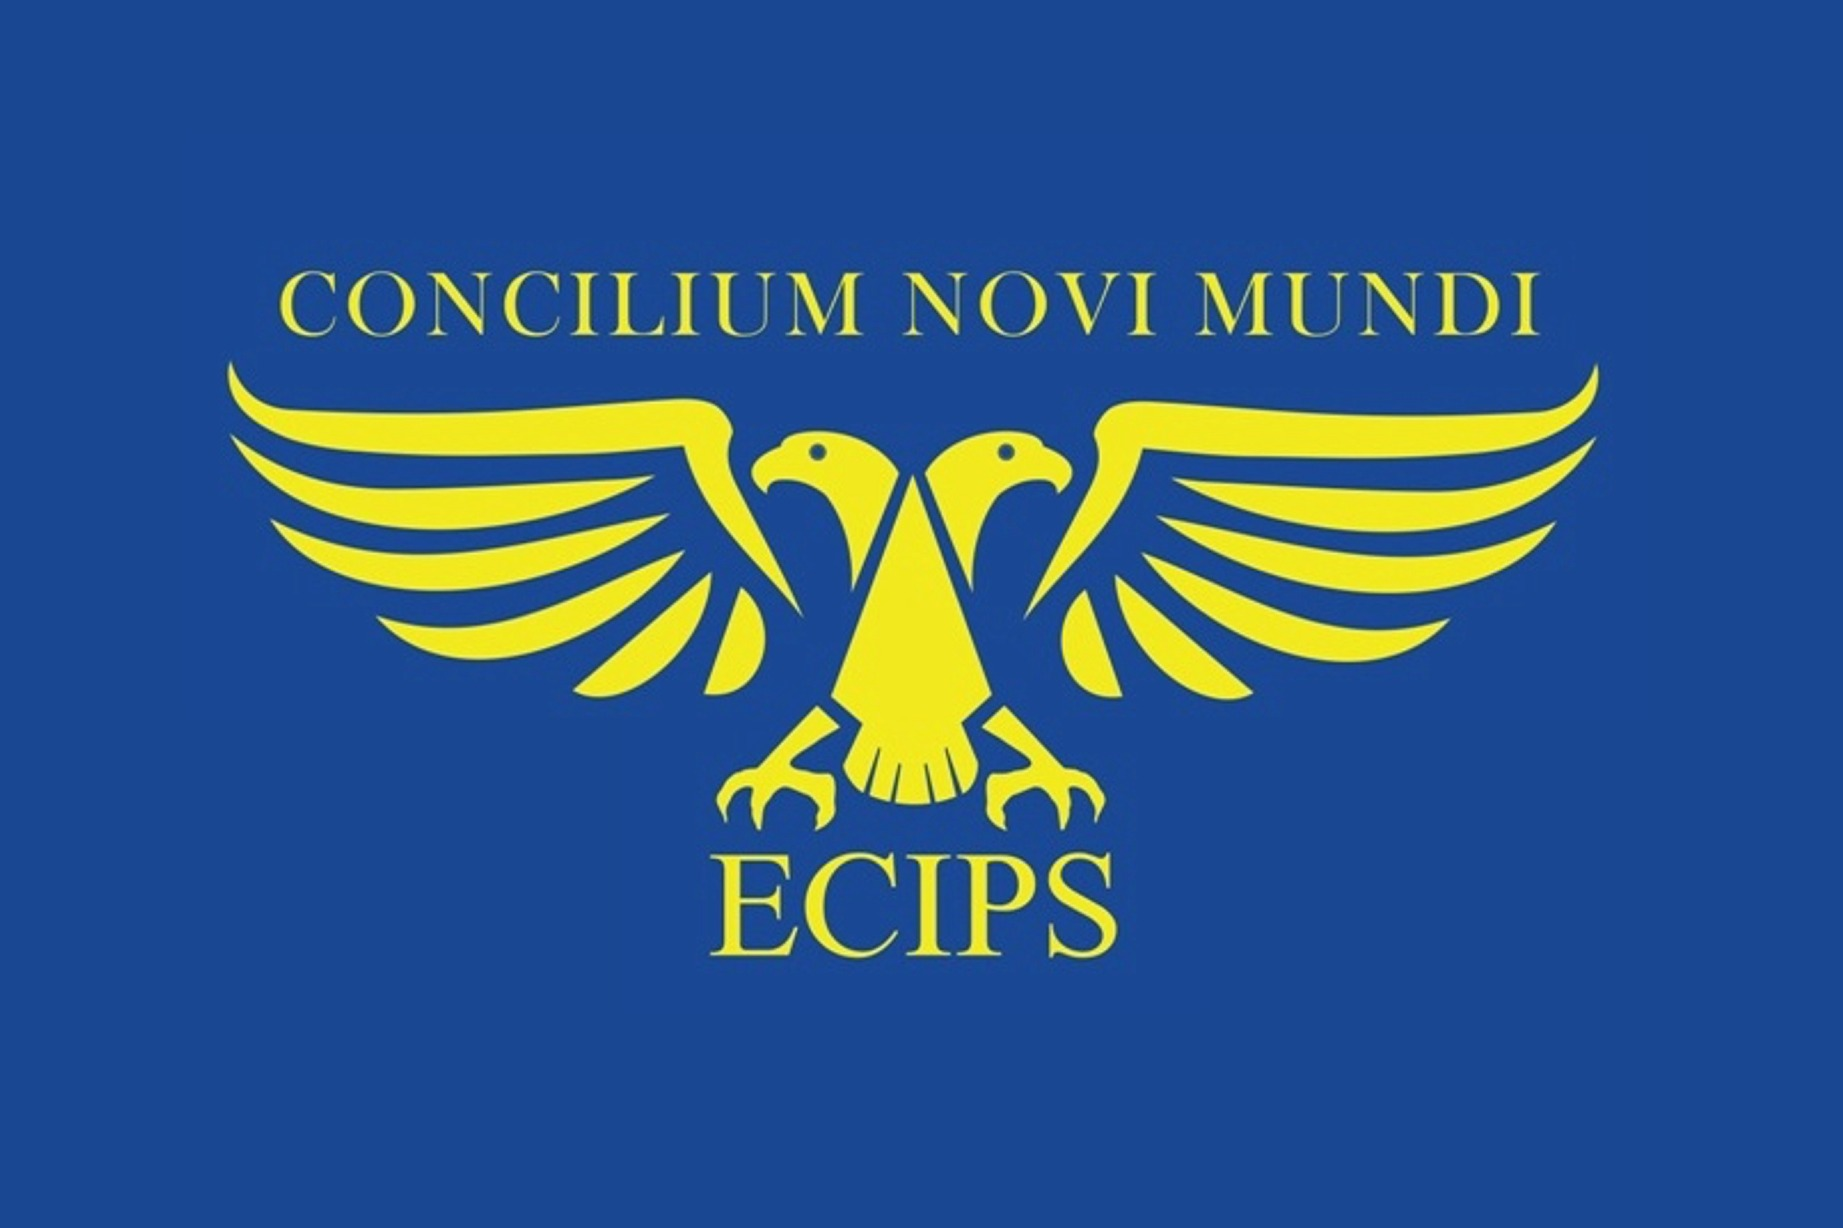 ECIPS NEWS | European Centre for Information Policy and Security (ECIPS) News